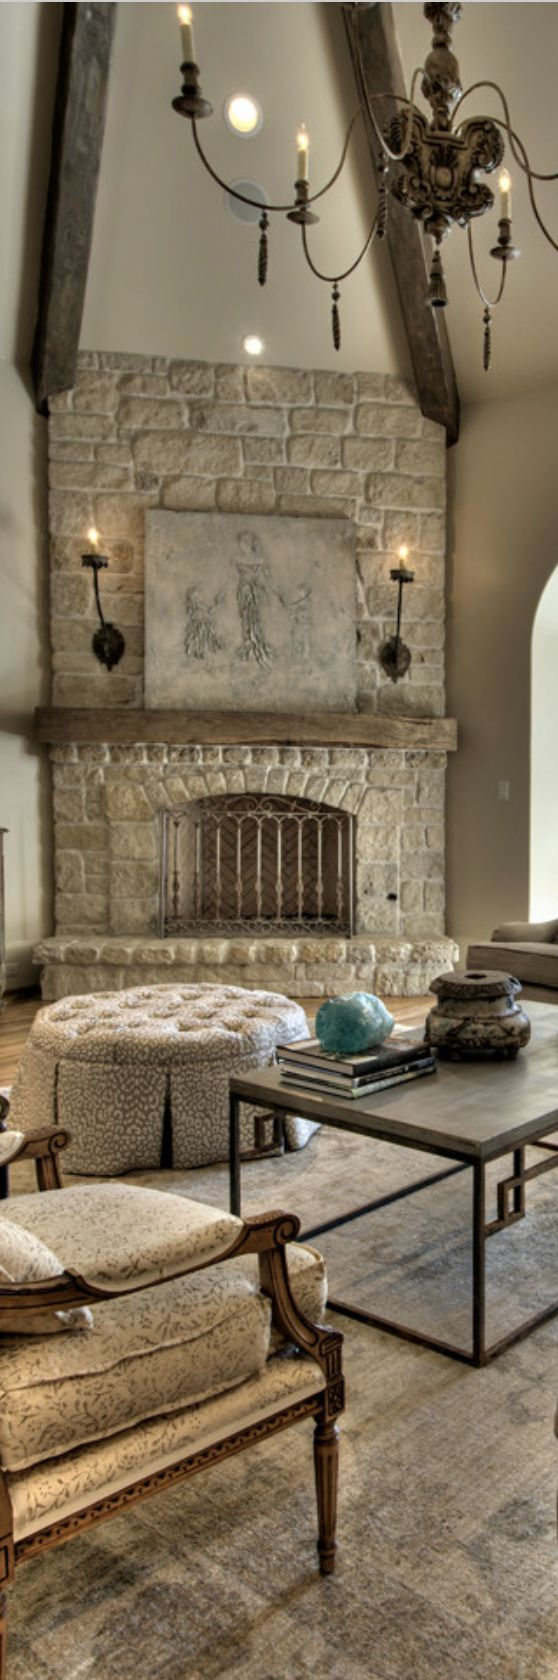 rustic elegance, all neutral color living room. vaulted.